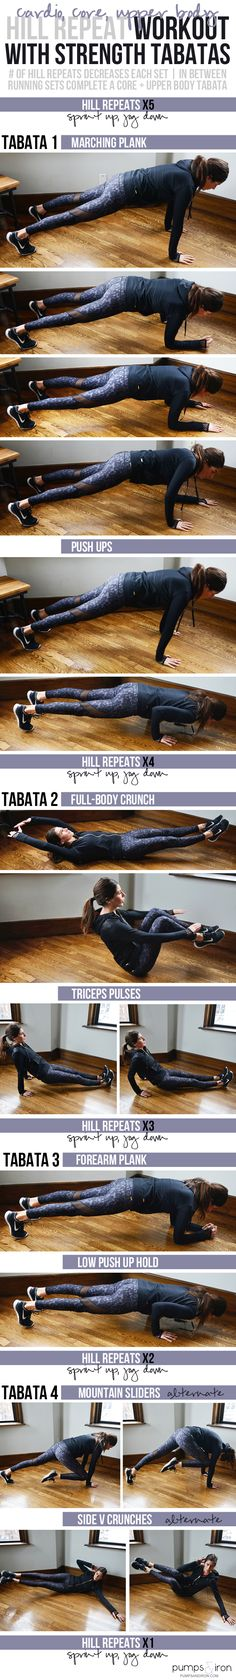 Hill Repeat Workout with Strength Training Tabatas (focusing on core and upper body)